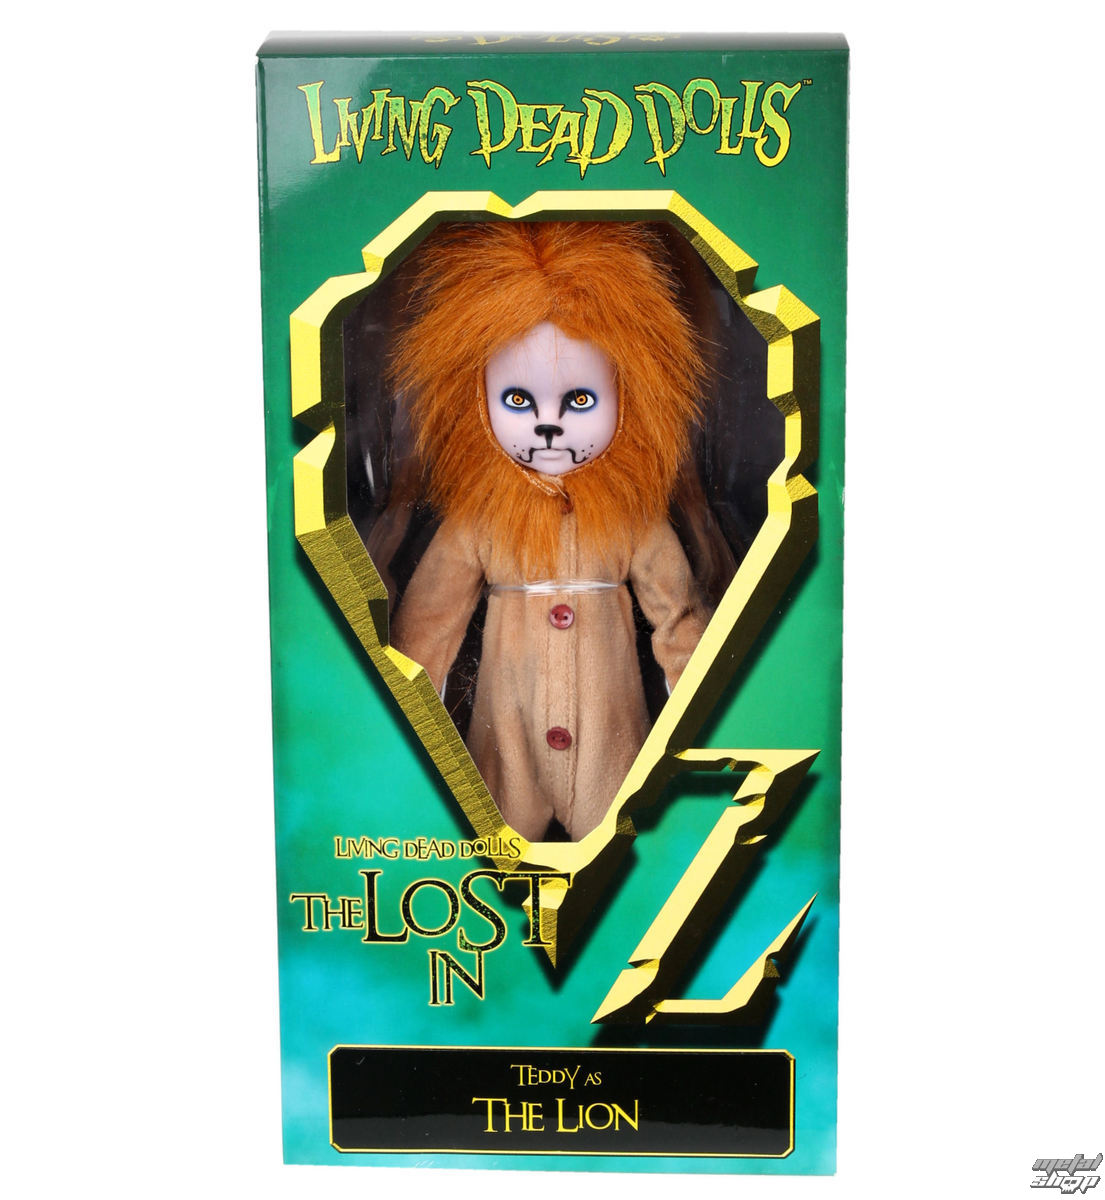 LIVING DEAD DOLLS Living dead dolls Teddy as The Lion